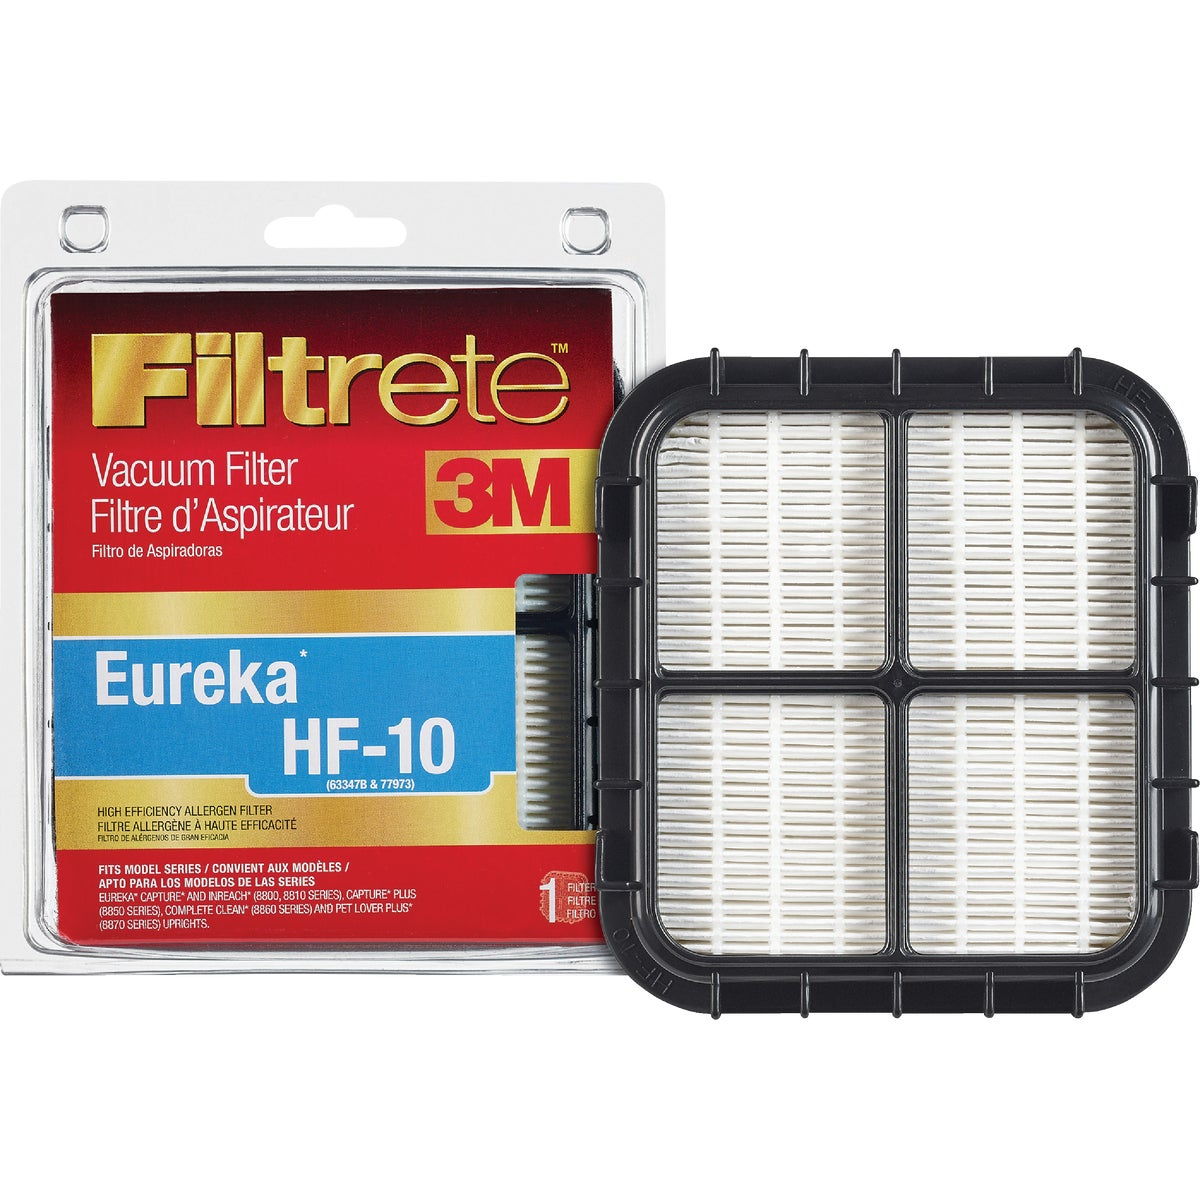 EUREKA HF10 HEPA FILTER - 67810A-2 by Electrolux Home Care